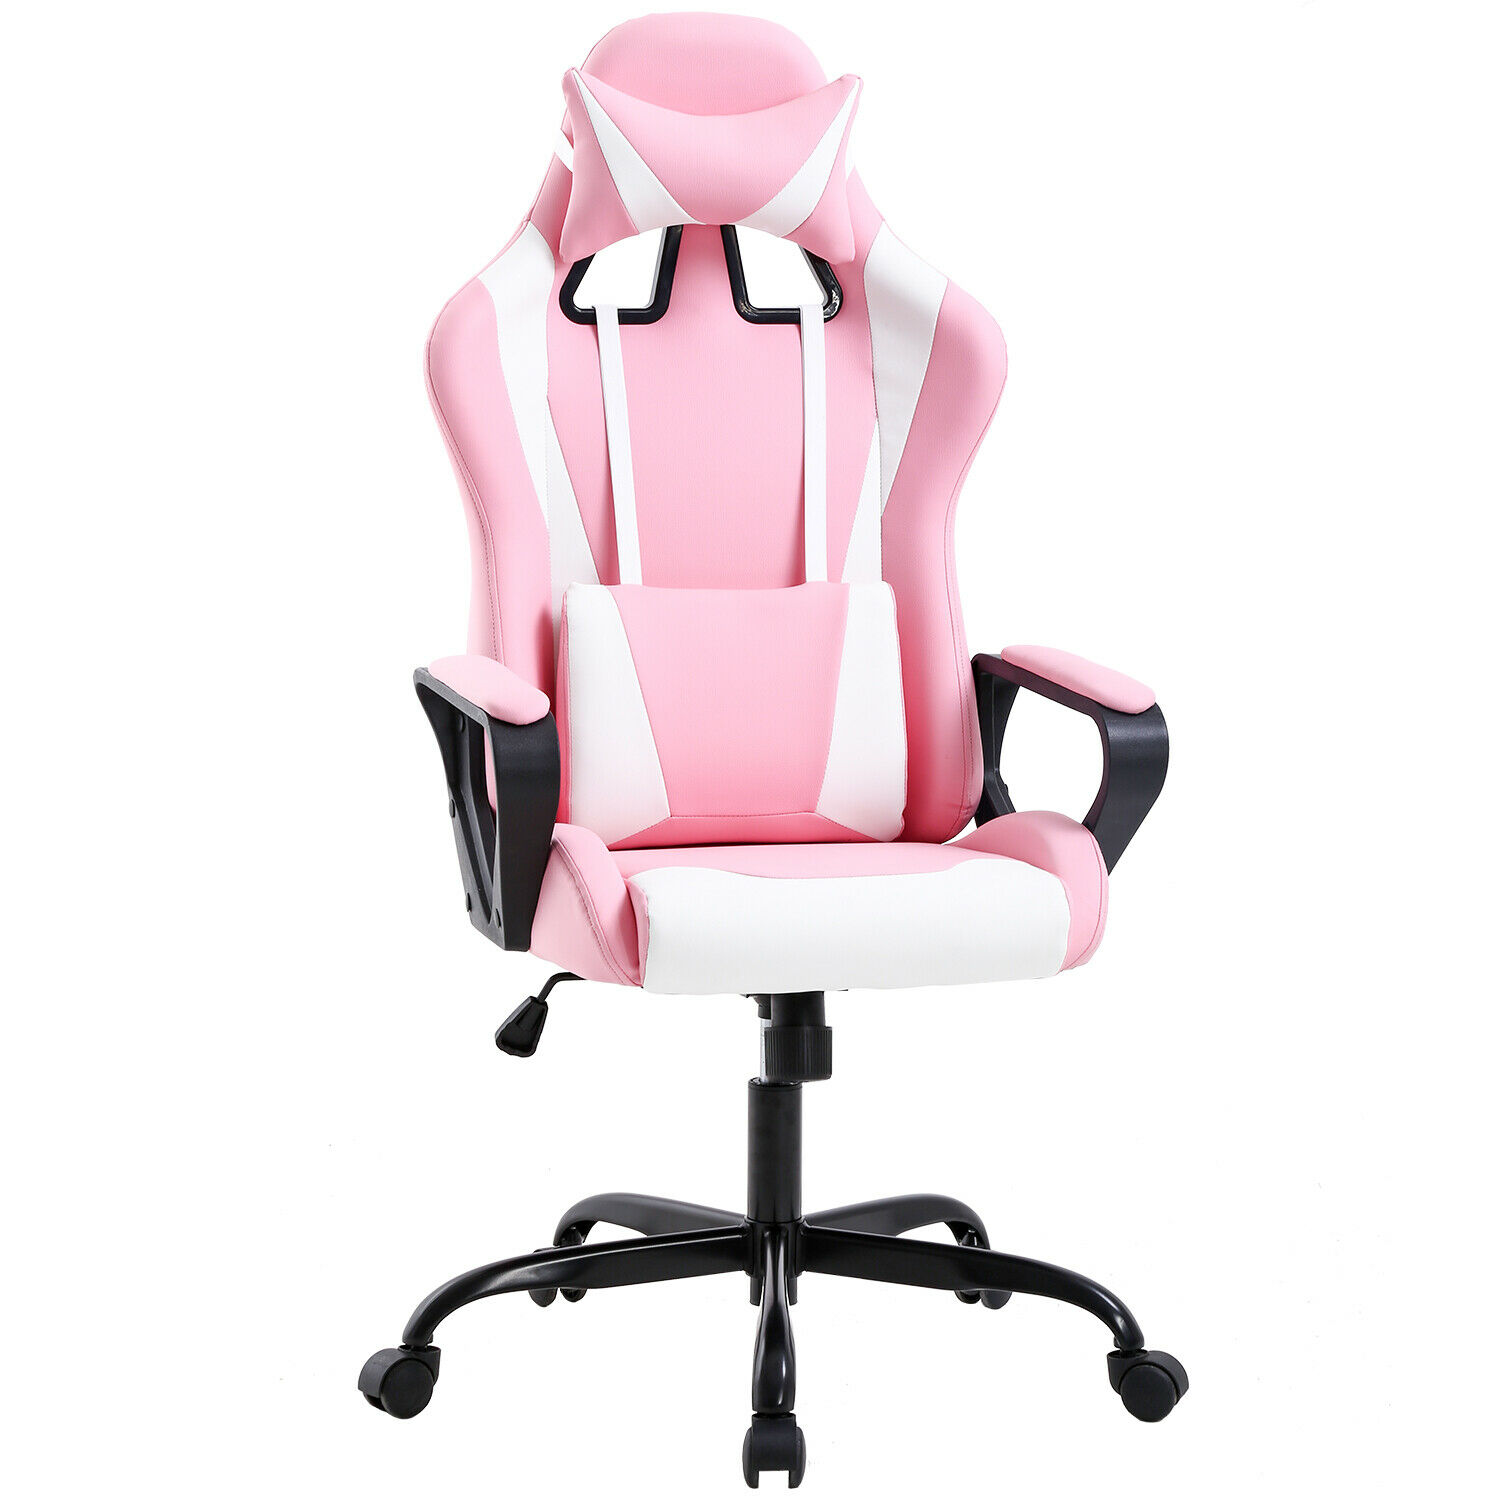 Fice Chair Gaming Chair Desk Chair Ergonomic Racing